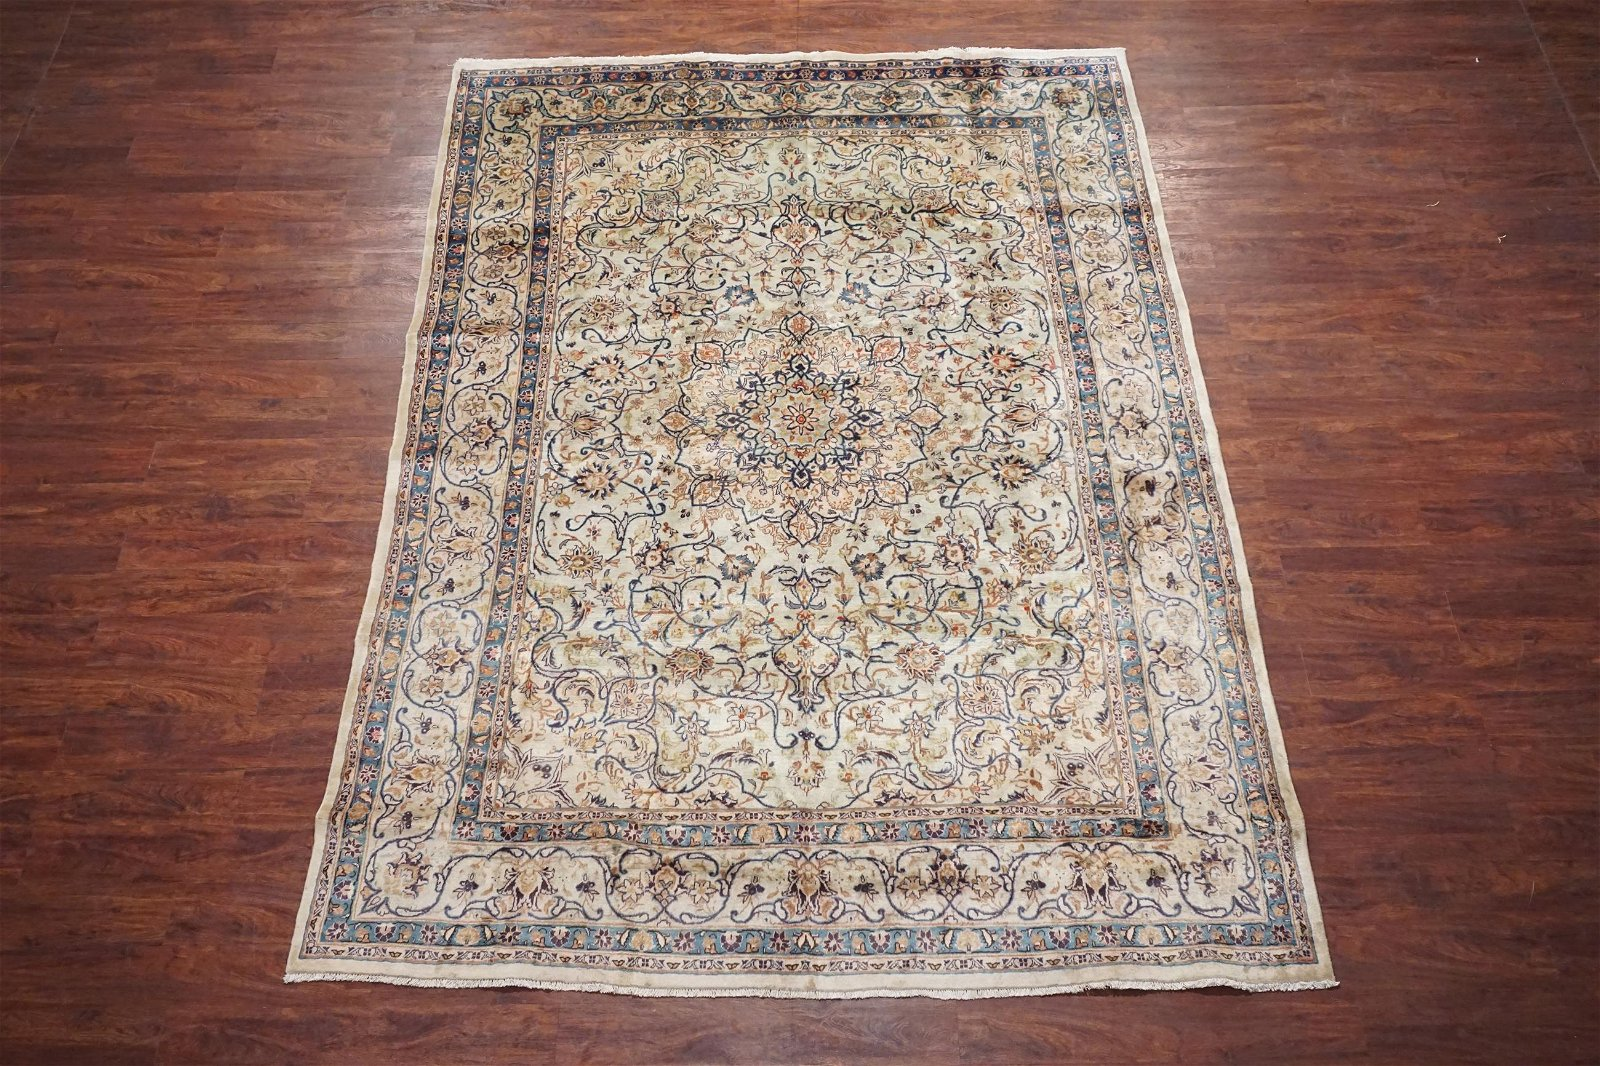 8X11 Antique Persian Kashan Hand-Knotted Wool Rug 1940s